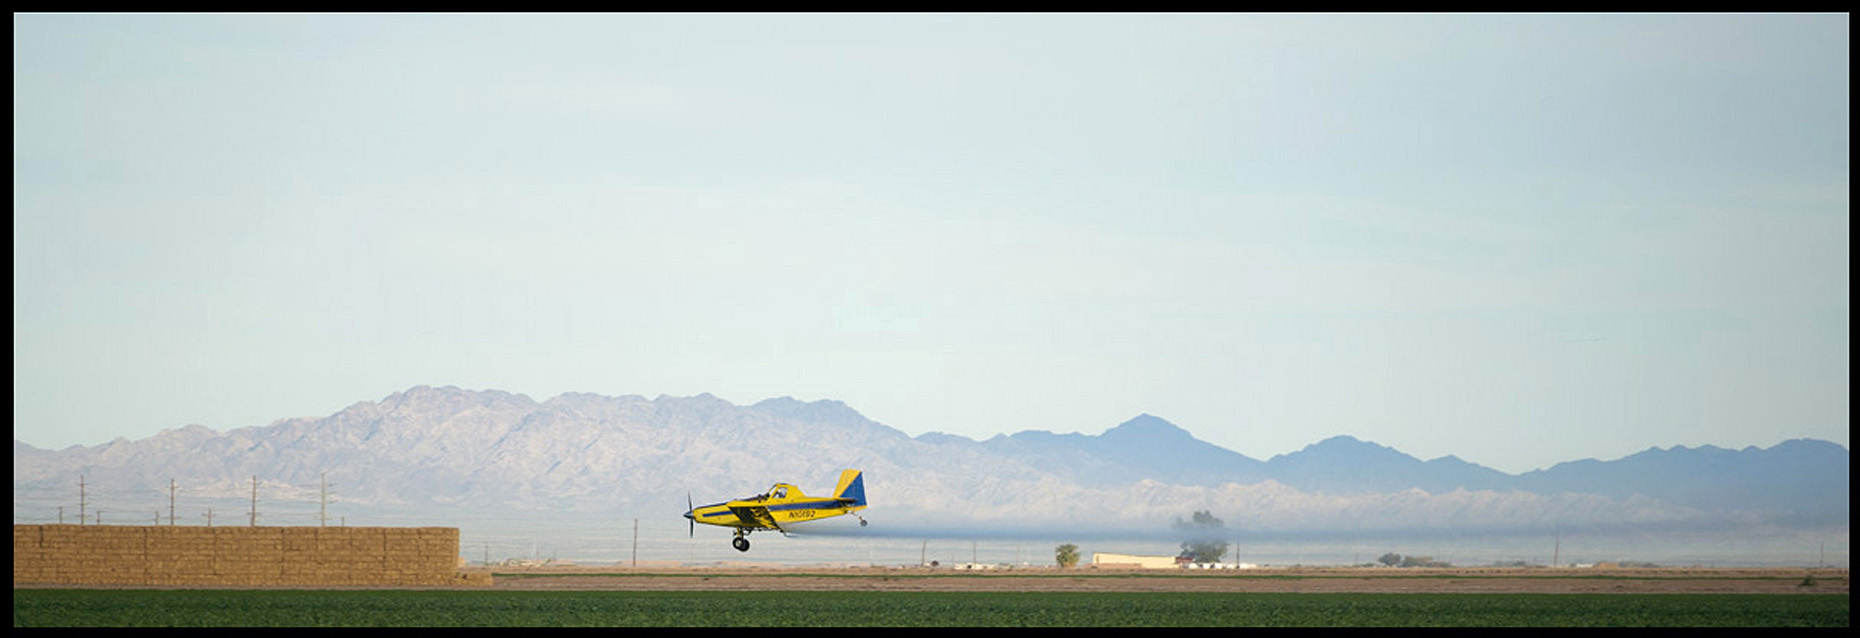 Salton Sea Sprayplane_116 copy.jpg